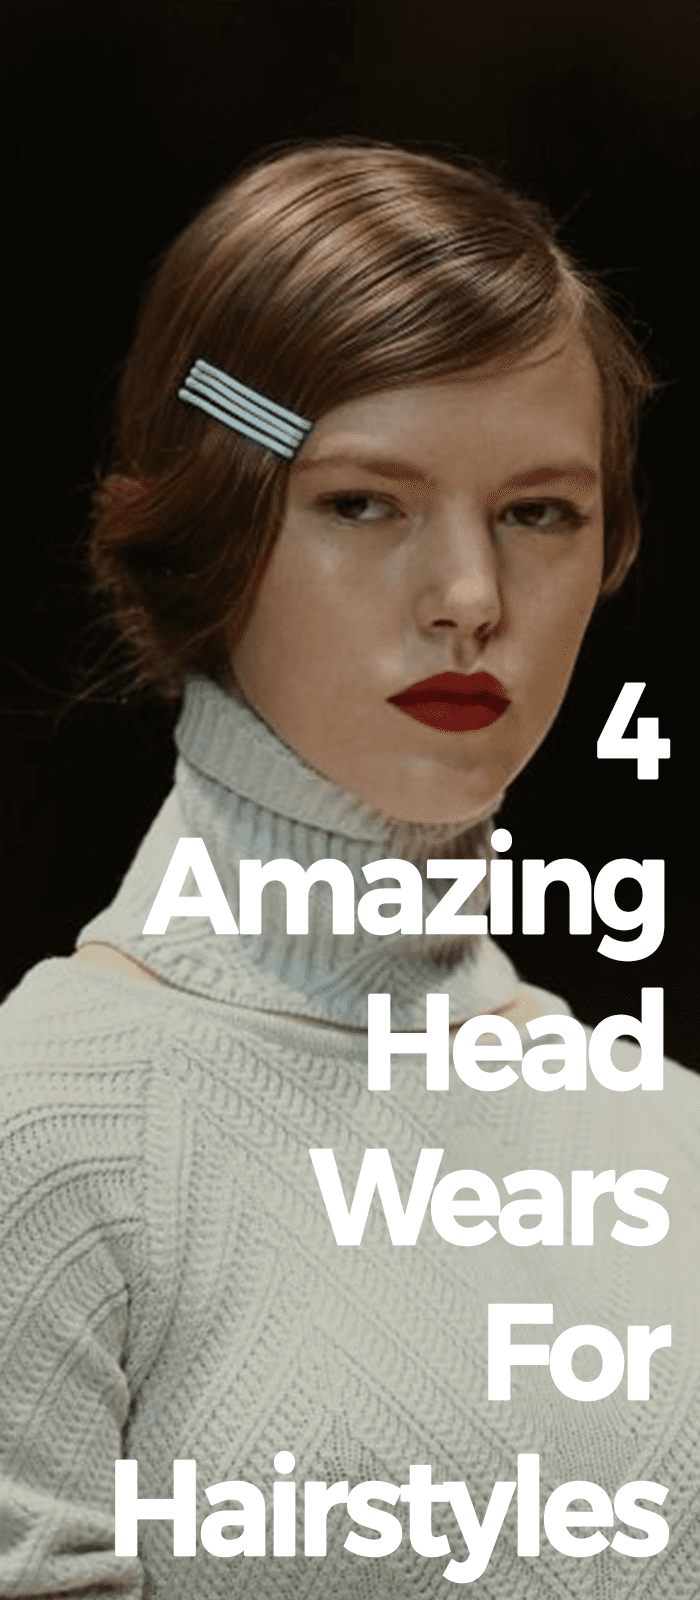 Amazing Head Wears For Hairstyles